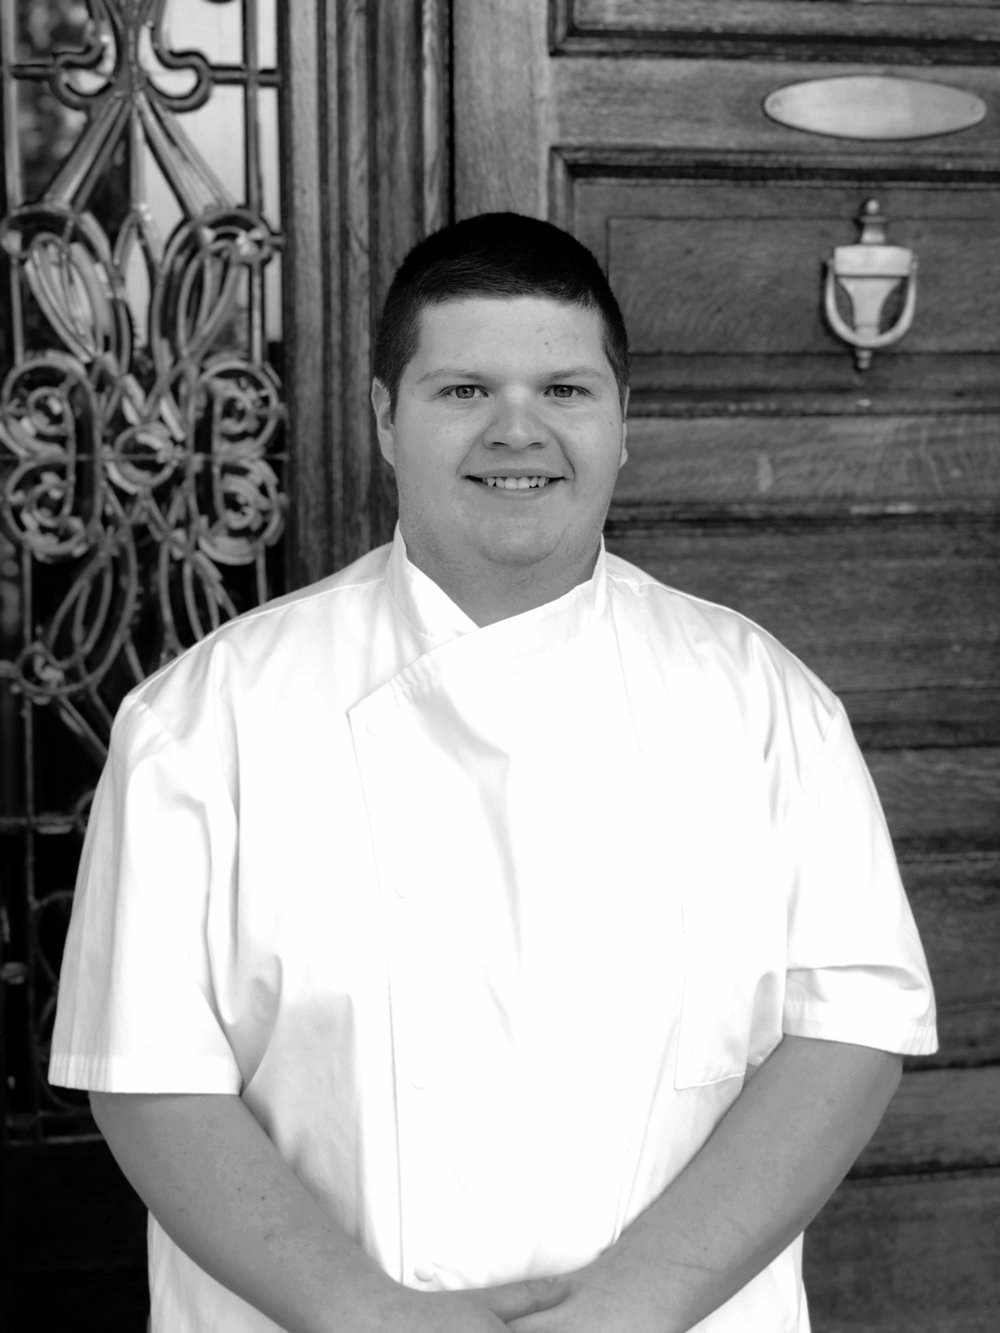 Jacoby Dinges - Executive Pastry ChefA local of the Valley, Jacob Dinges had humble beginnings with a degree in Culinary Arts from a local vocational school, Tripplet Tech. Shortly after graduating, Jacoby attended the Culinary Institute of America to hone his skills in pastry baking and service management. Shortly thereafter, Jacoby took his talent abroad to Saarbrucken, Germany where he worked constructing intricate dishes for a three Michelin star restaurant, Gästehaus Klaus Erfort. After enjoying his time abroad, Jacoby returned to the Valley and worked as the lead Pastry Chef for Bella Gelato, before coming to the Joshua Wilton House in October of 2018. We are happy to have Jacoby join our team; his desserts express an elegance and refinement worthy of such a historic and influential home.